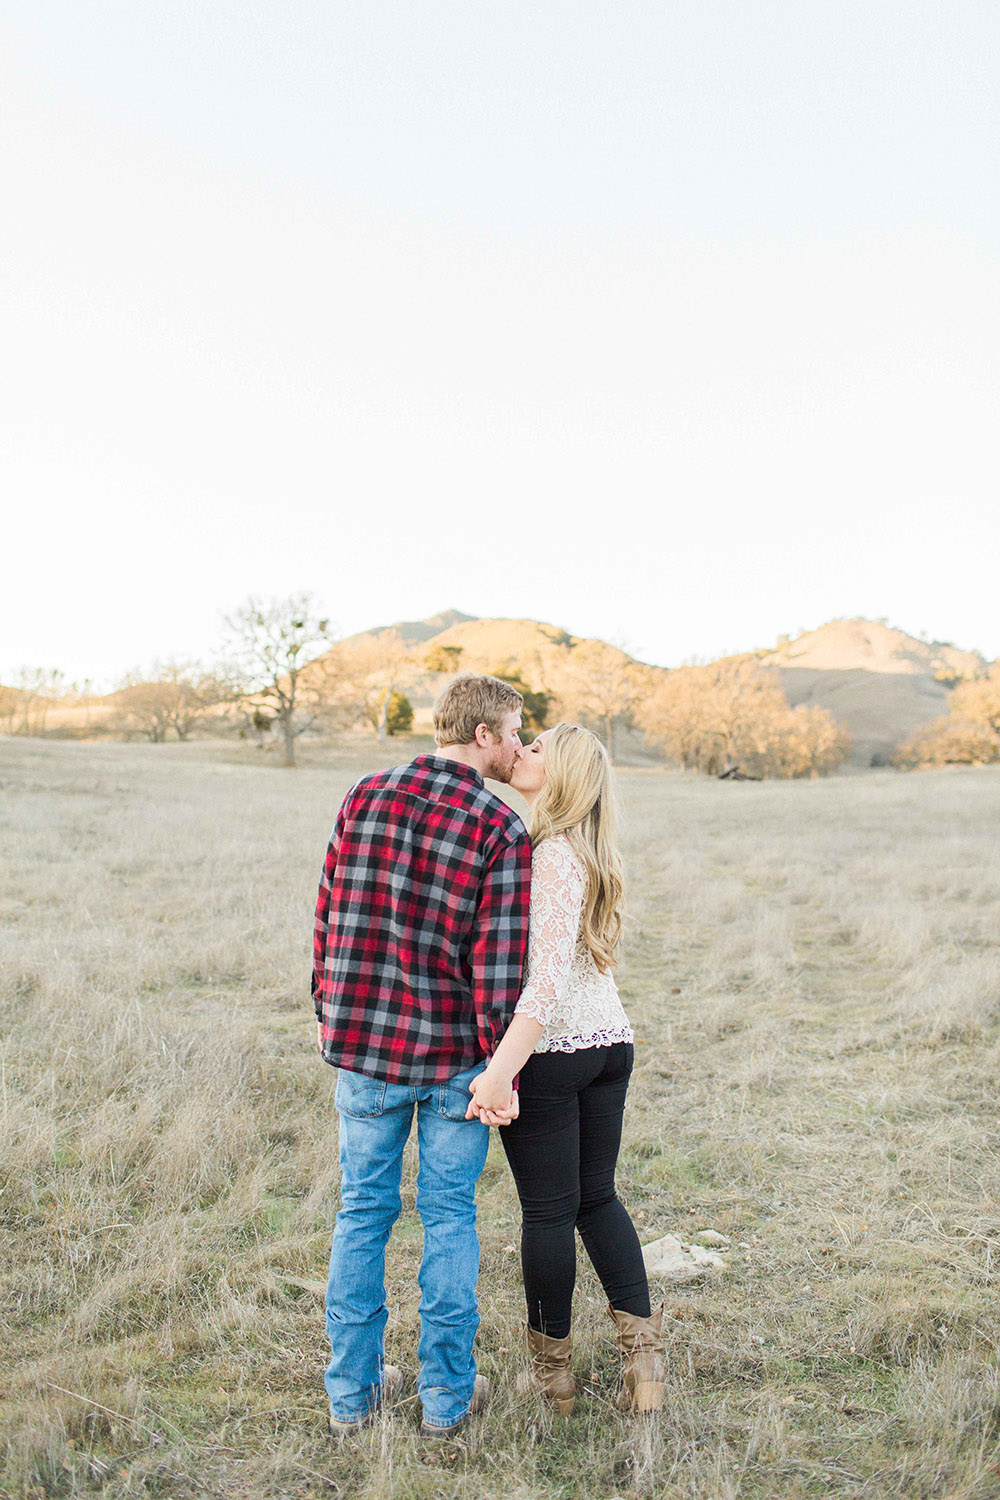 Kristyn Villars Photography-mariah lee engagement-36